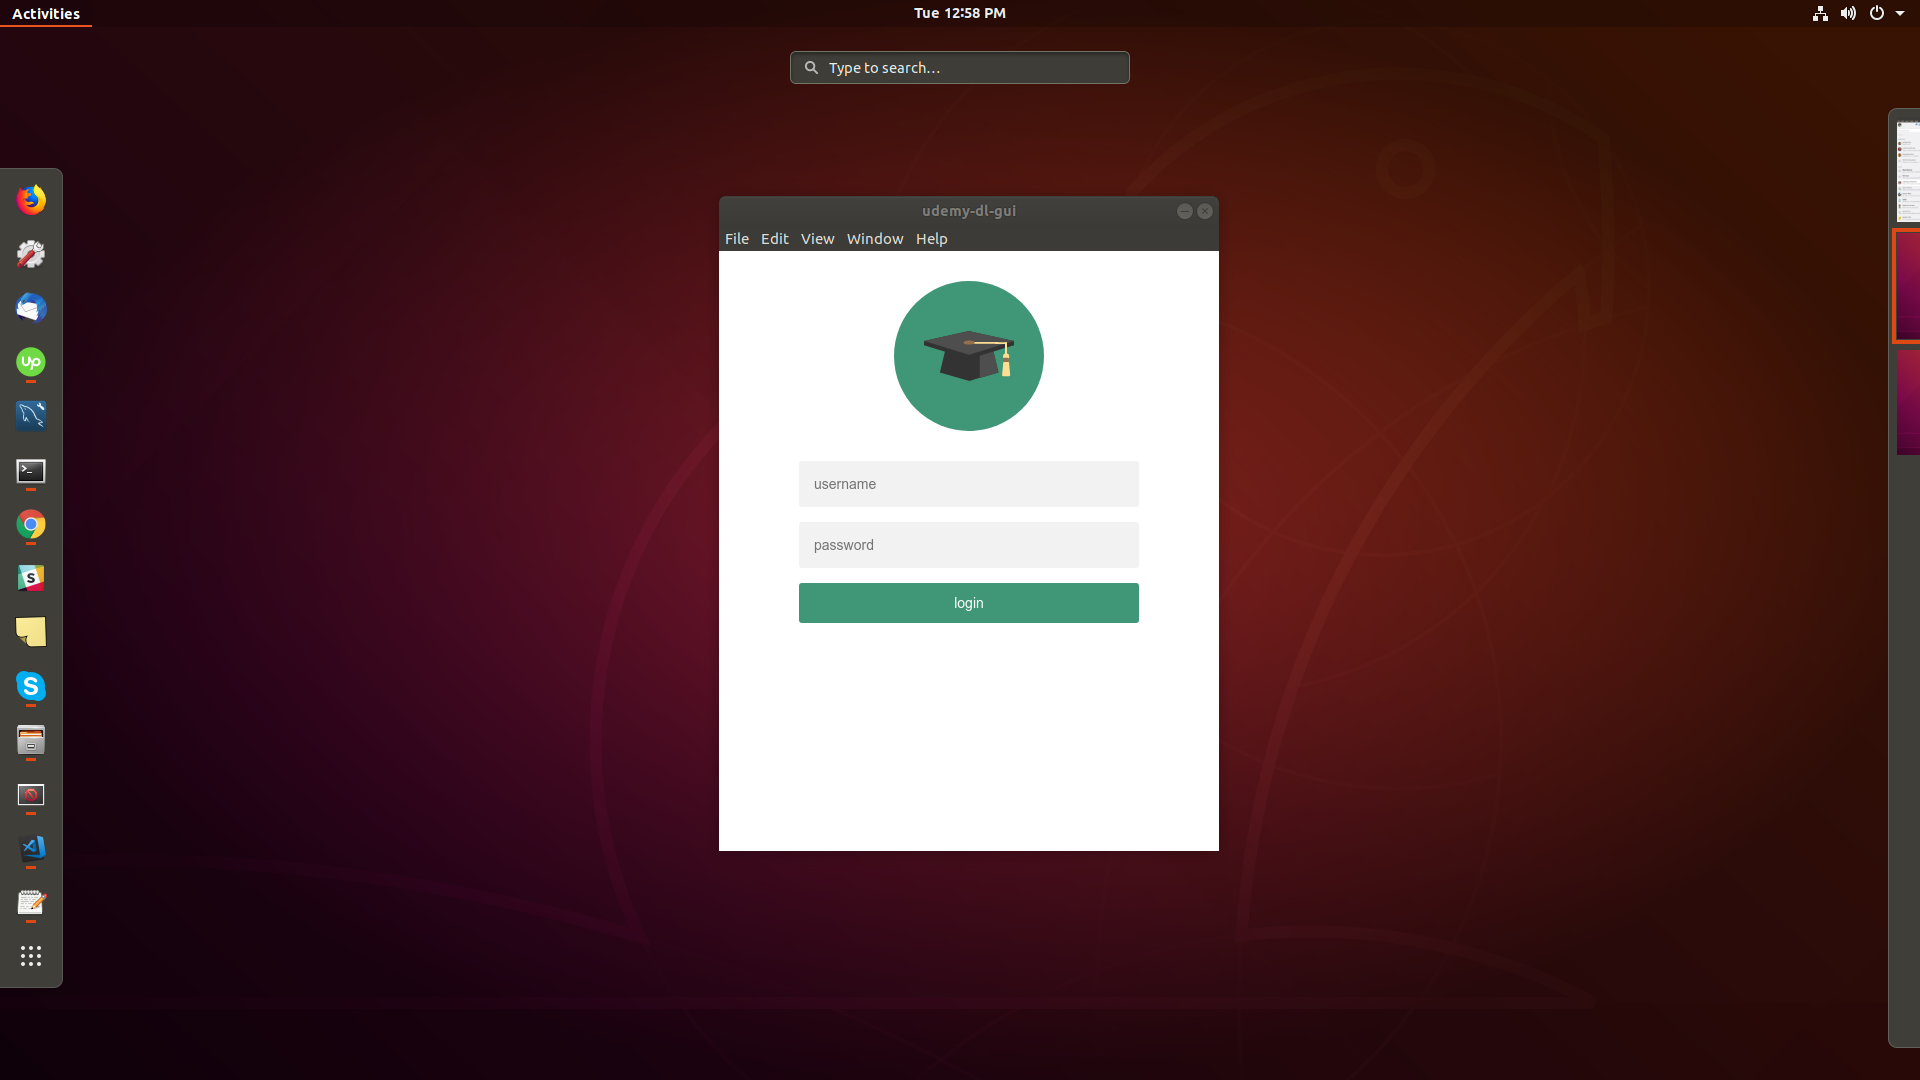 udemy-dl login screen